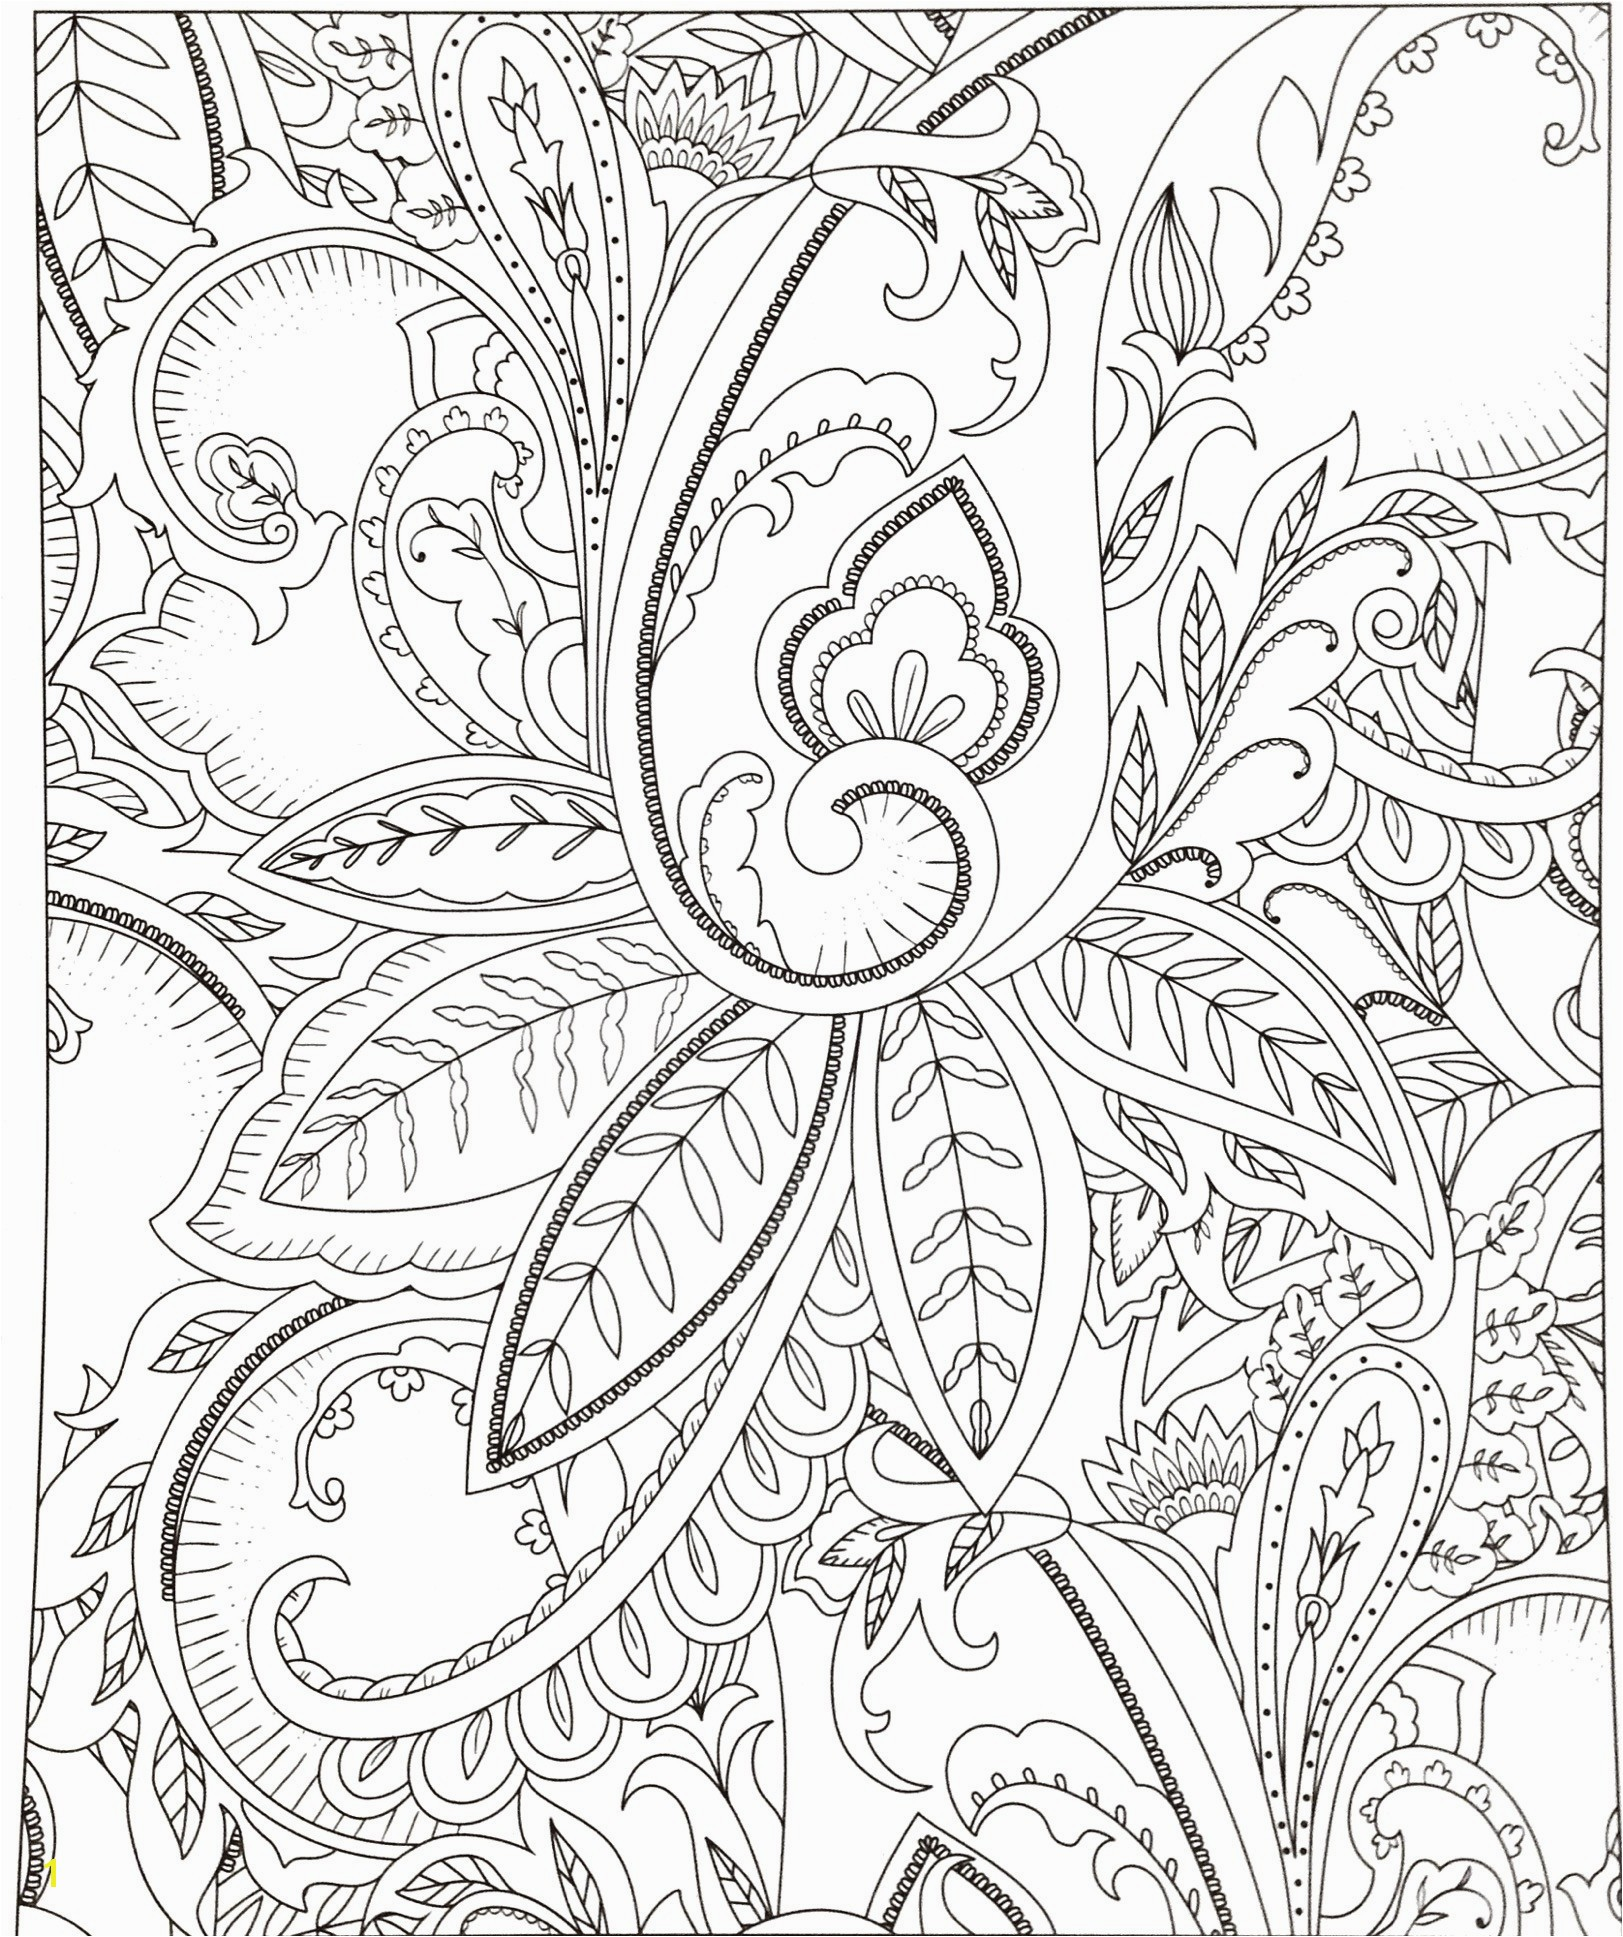 Coloring Pages for 7th Graders Inspirational Crayola Free Coloring Pages Unique Pin Od Pou…¾vate